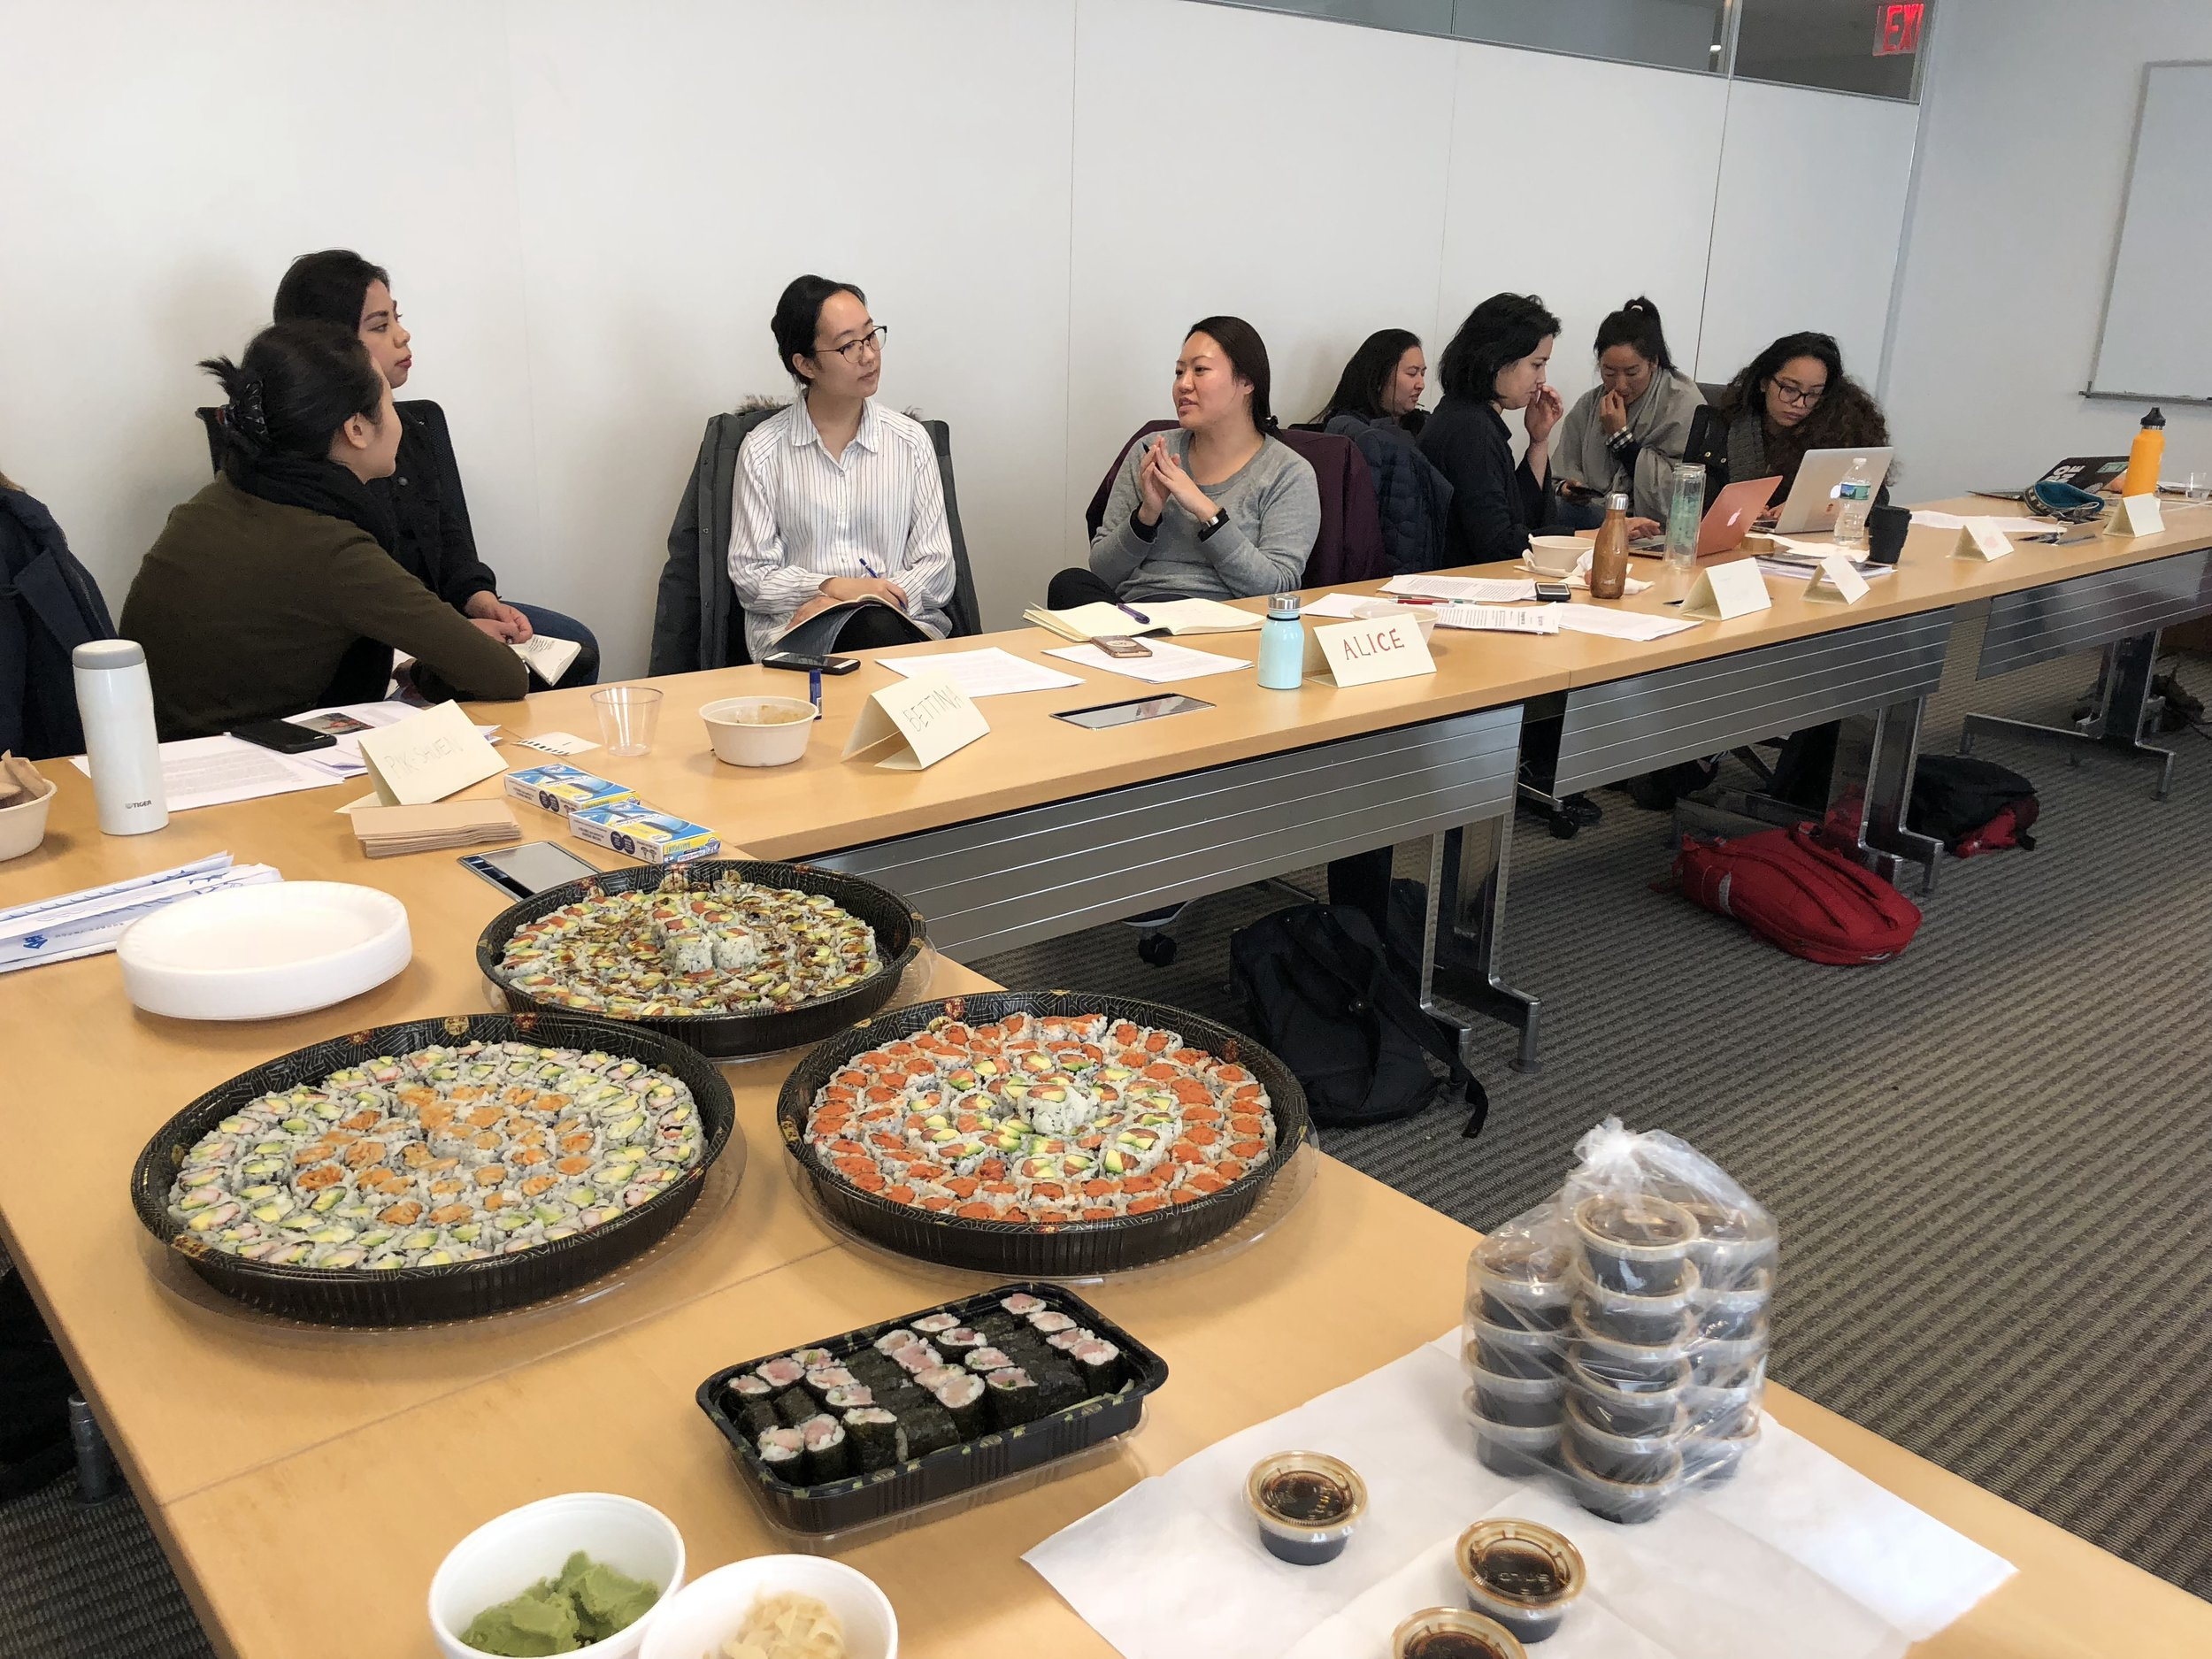 Sushi arrives while everyone breaks into groups to discuss each other's works.